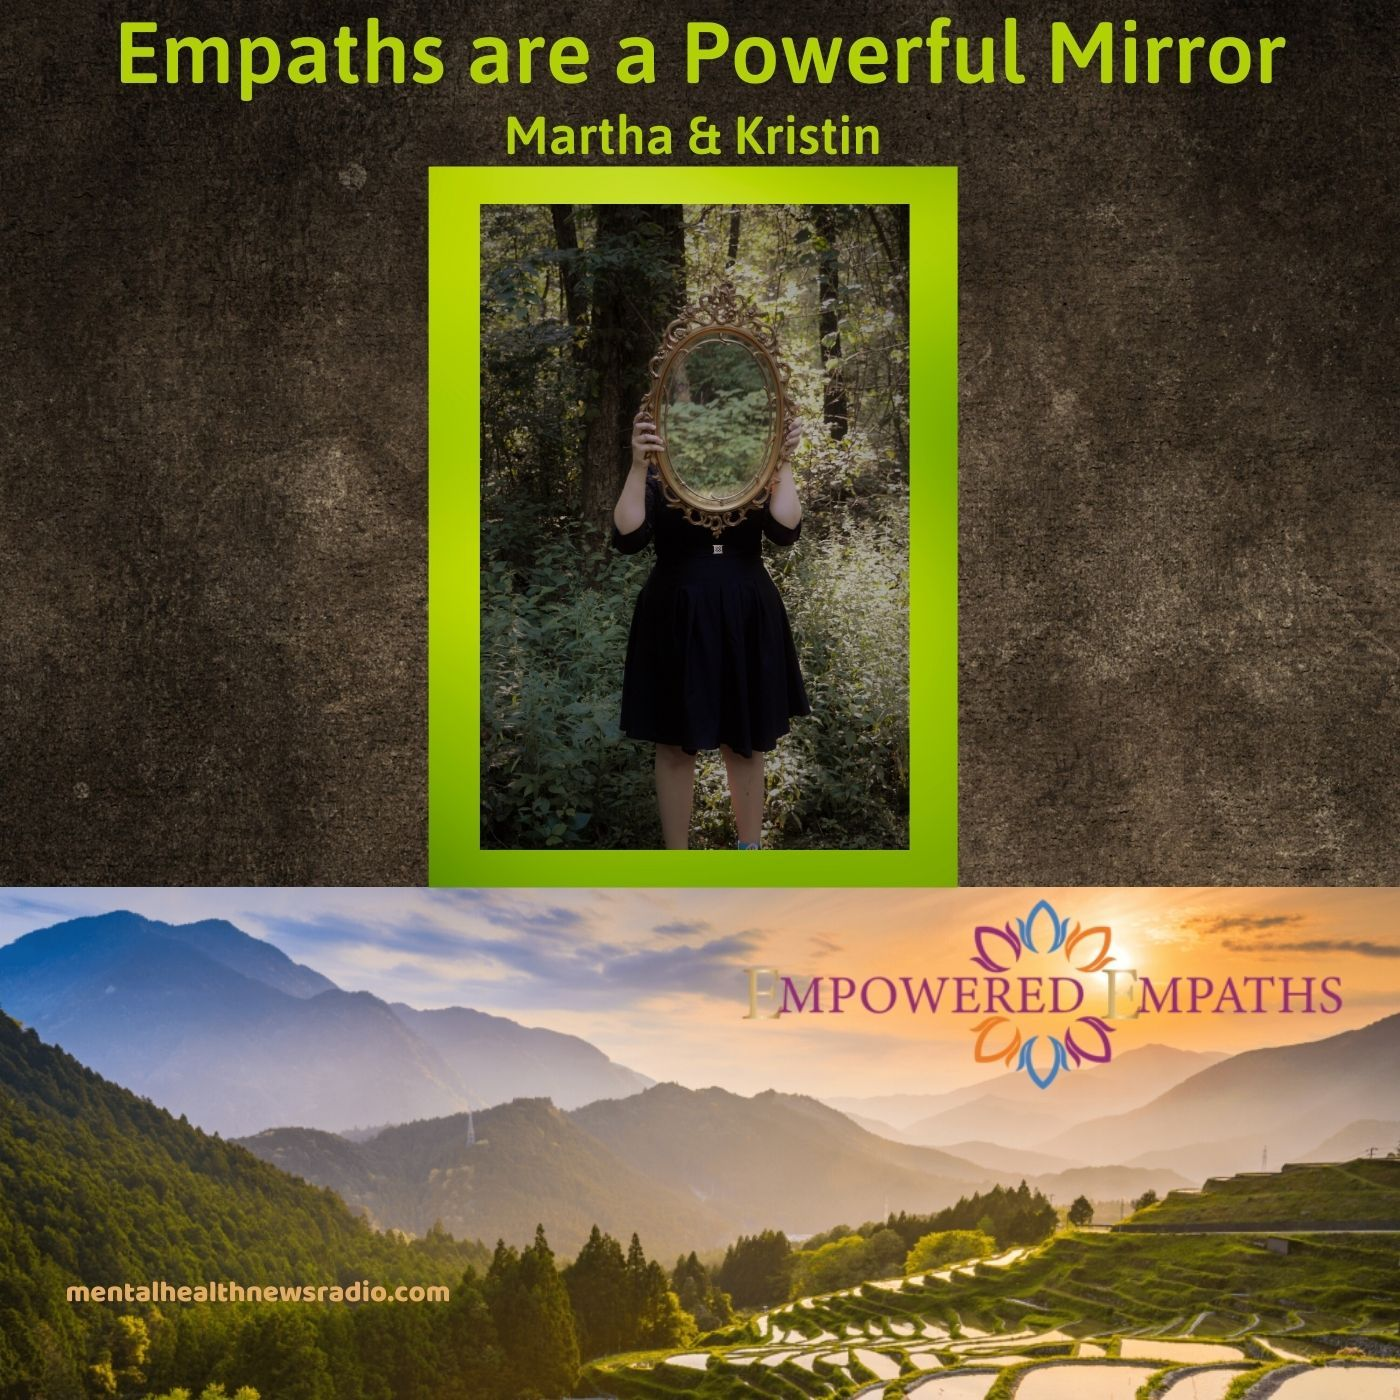 Empaths are a Powerful Mirror